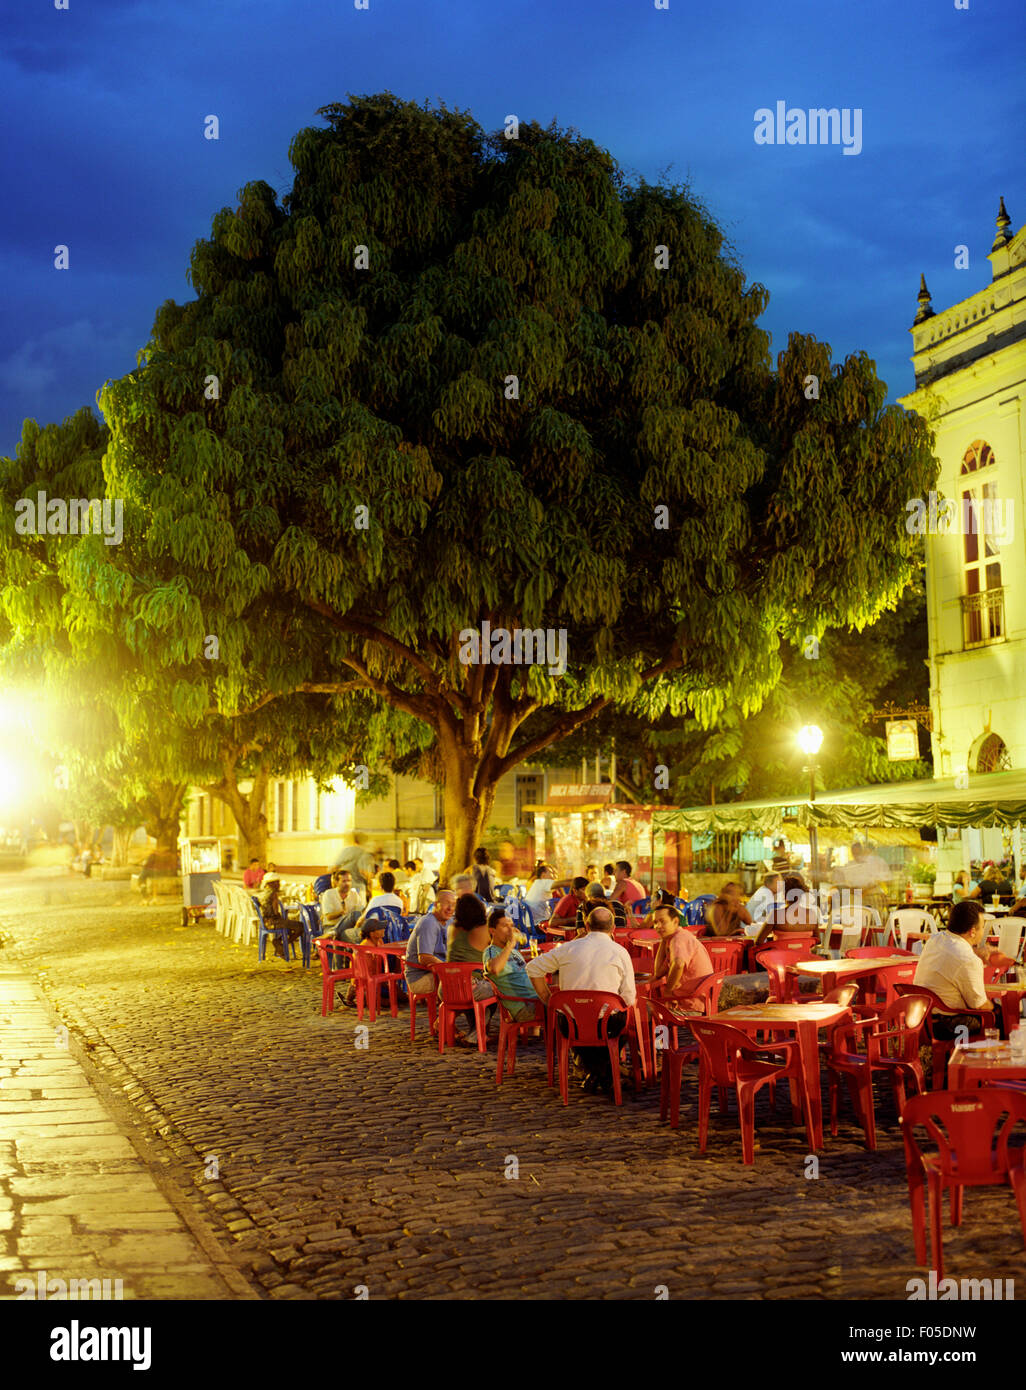 An interior view of Restaurante Antigamente.  Sao Luis, Brazil - Stock Image